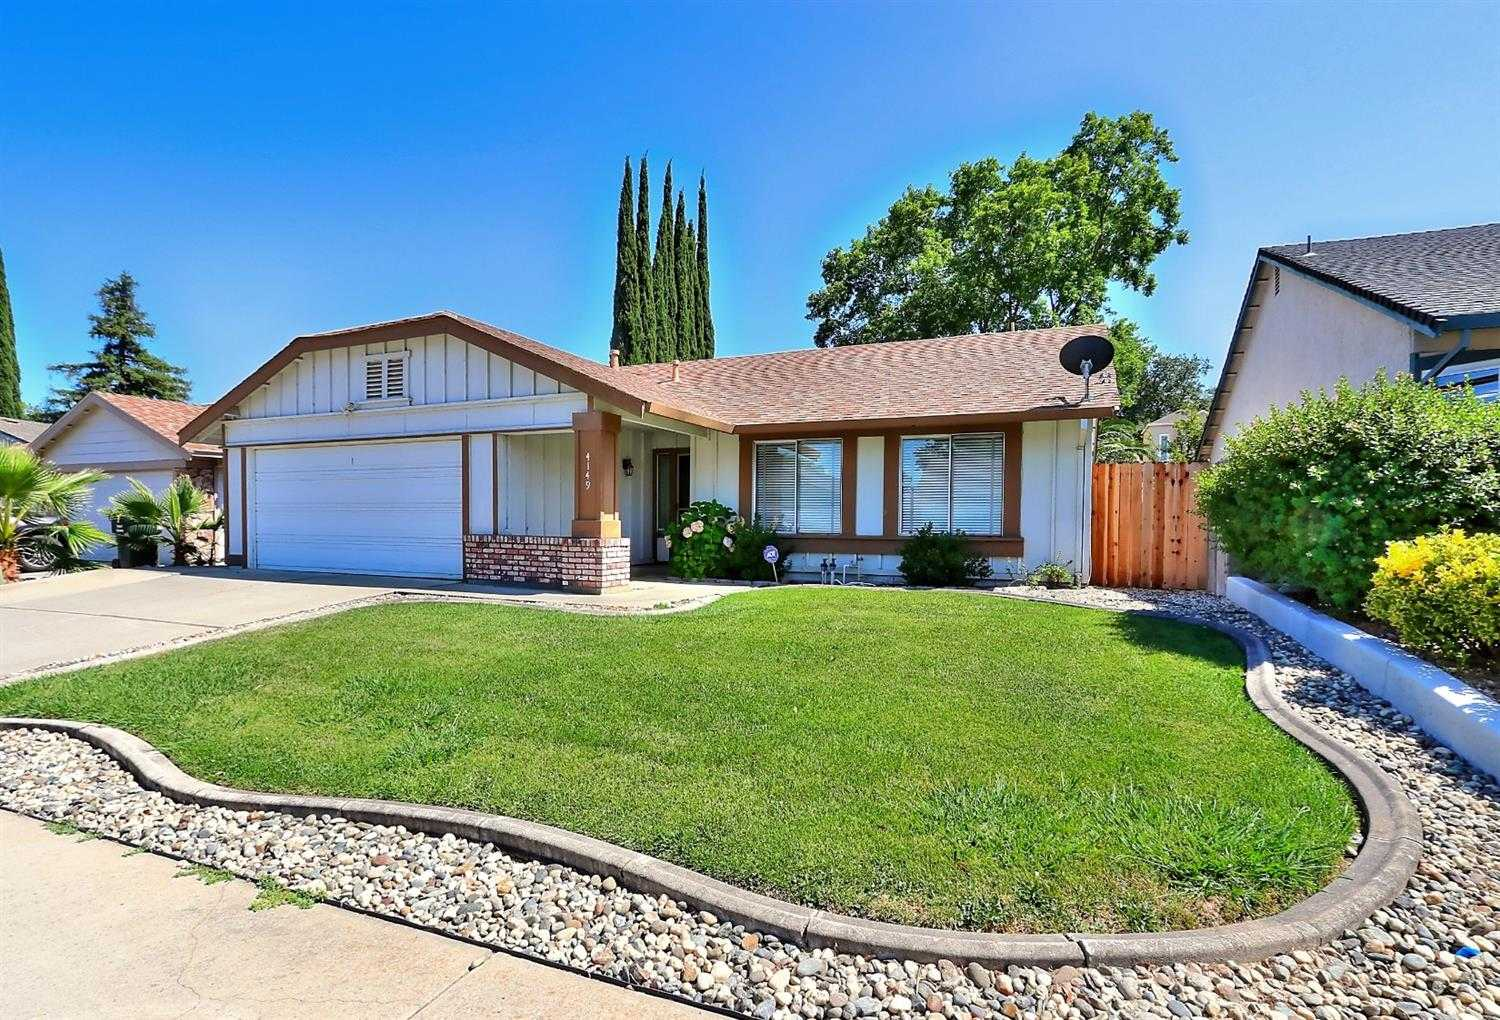 $335,000 - 3Br/2Ba -  for Sale in North Country #5, Antelope